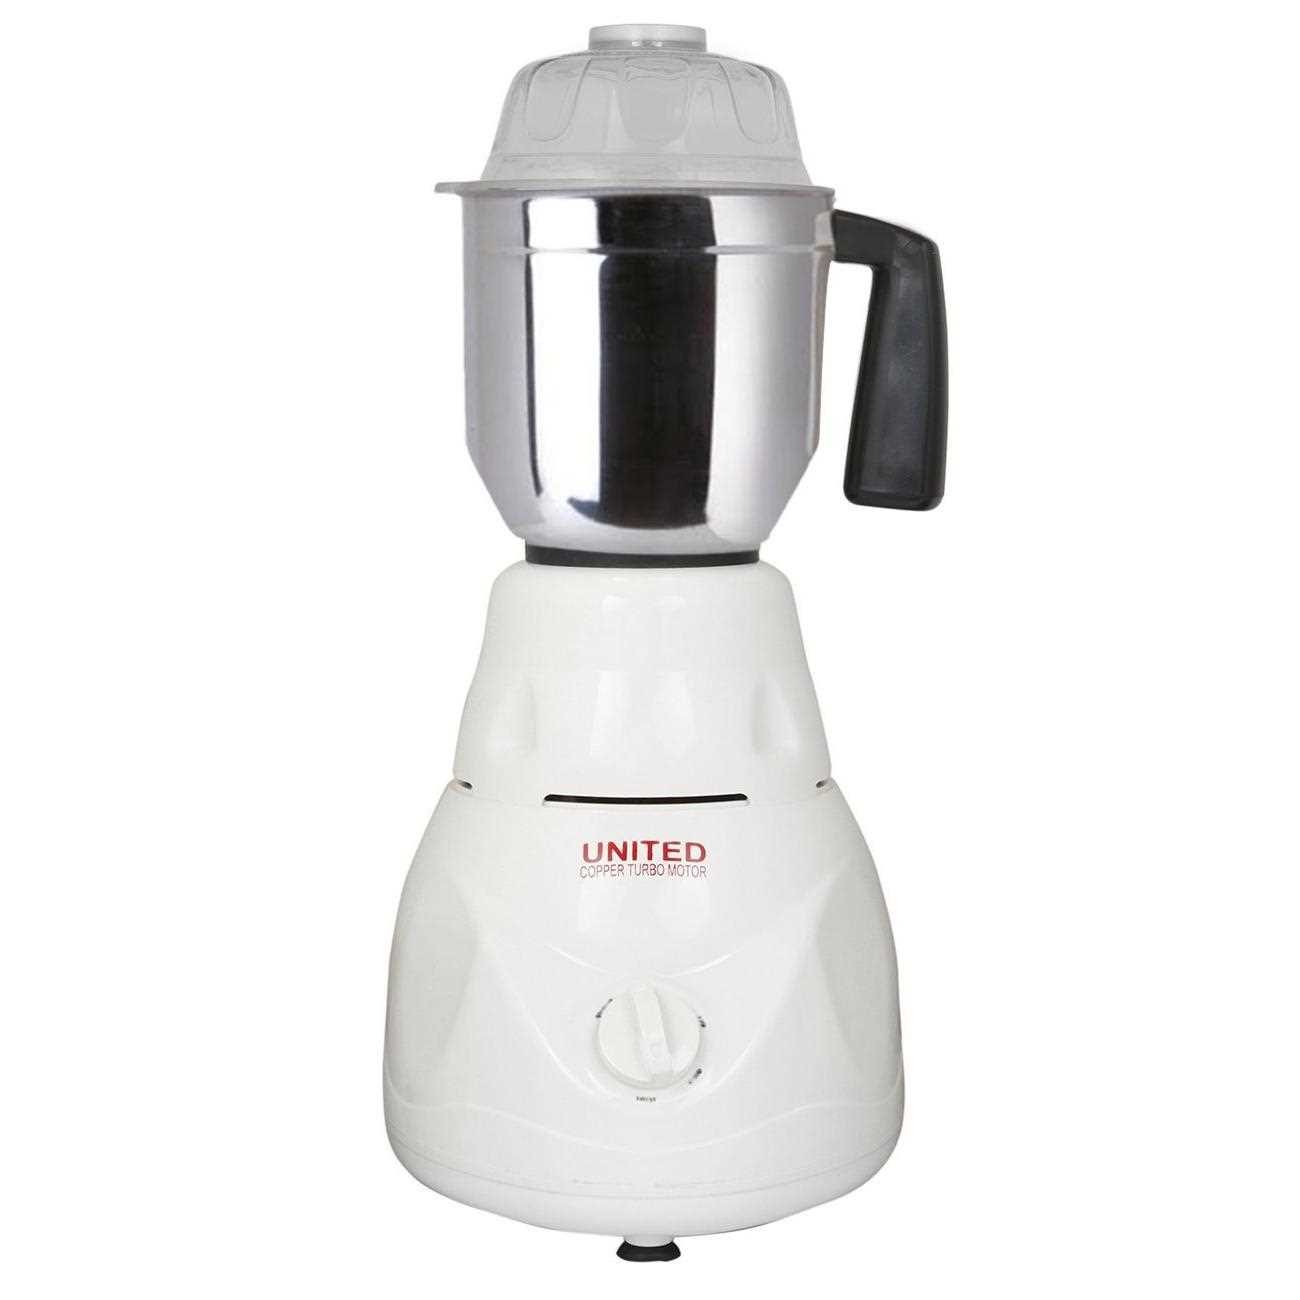 United A Star Mini 400 W Mixer Grinder